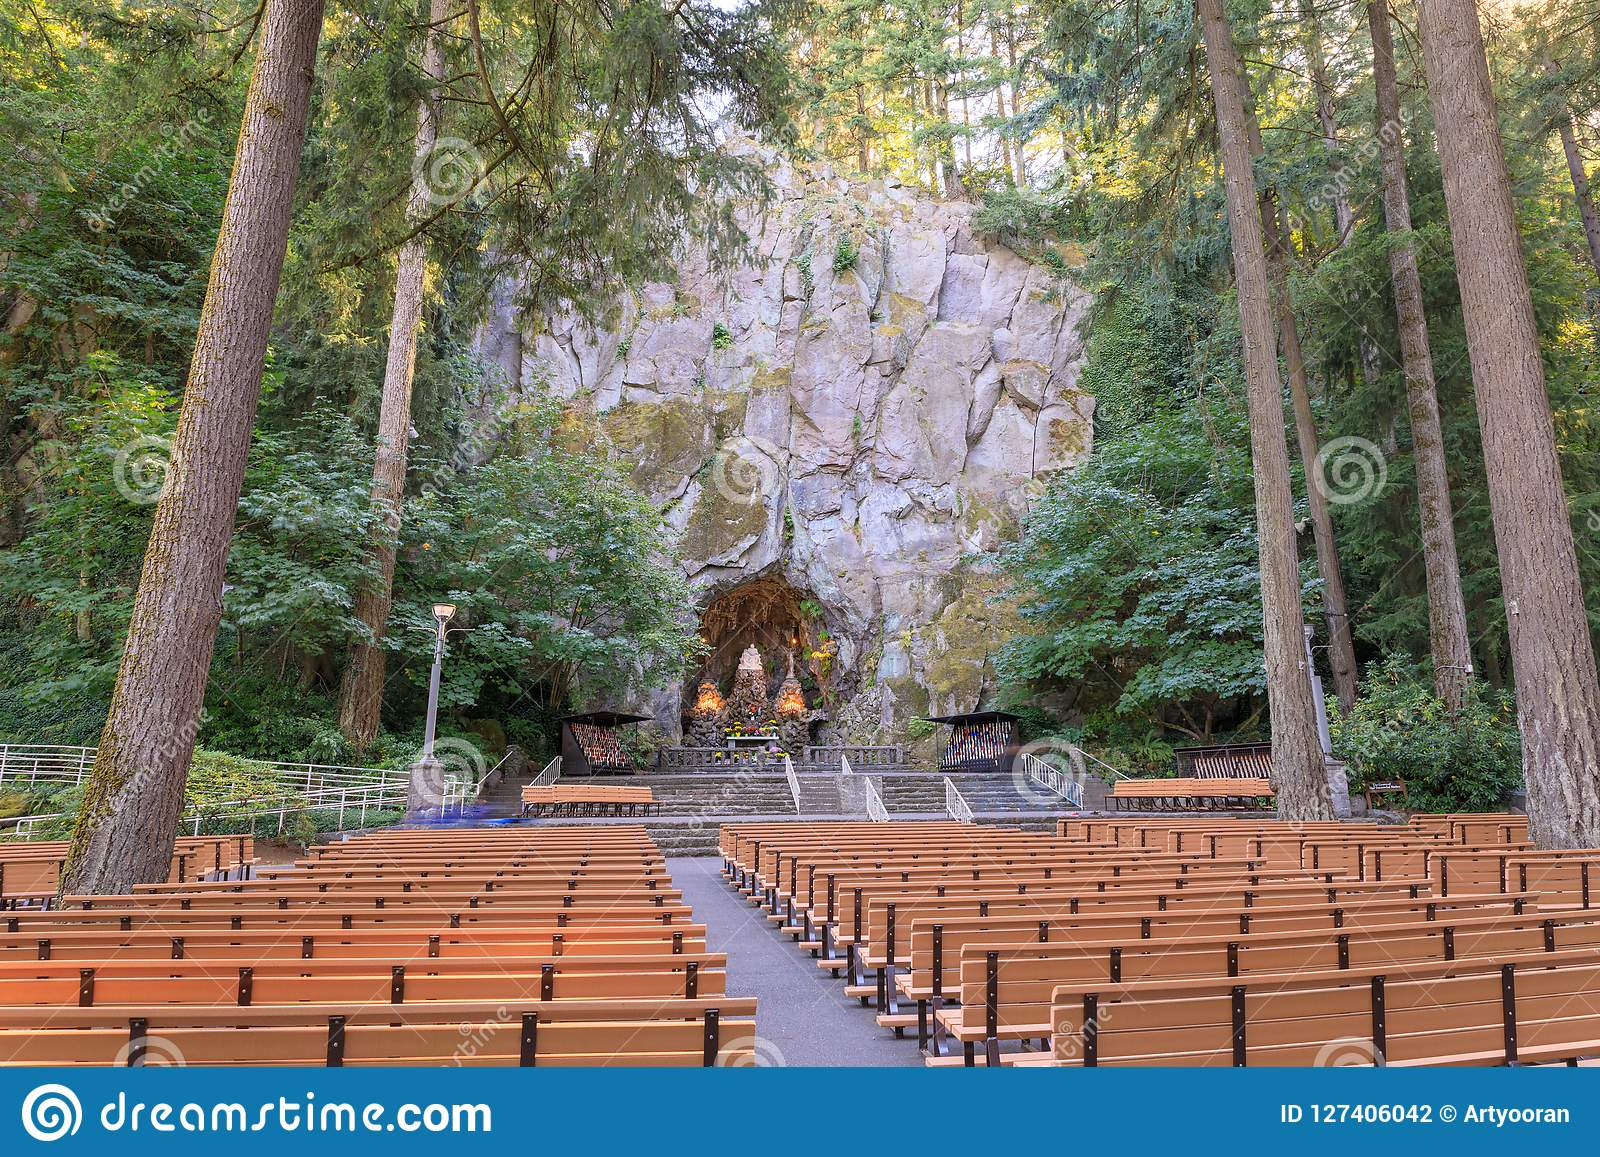 The Grotto, is a Catholic outdoor shrine and sanctuary located in the Madison South district of Portland, Oregon, United States